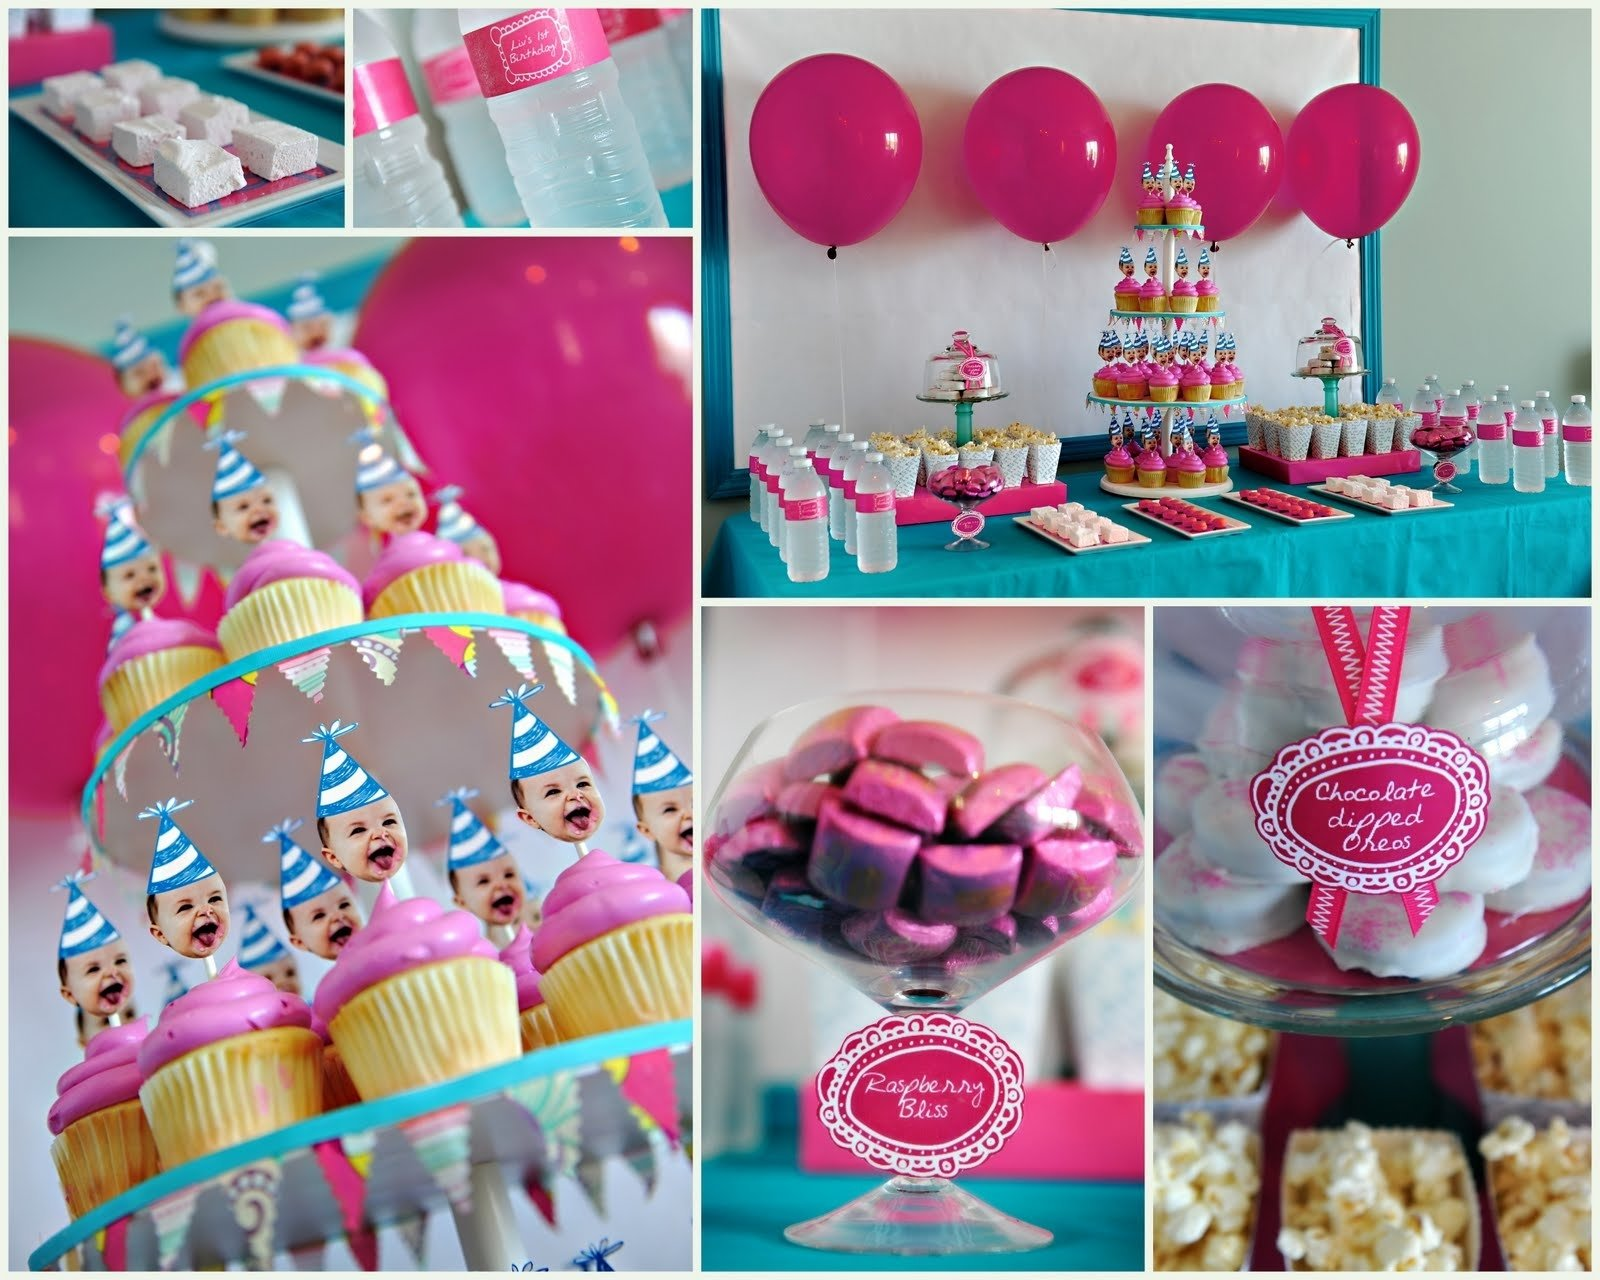 10 Cute Ideas For A 1 Year Old Birthday Party Themes